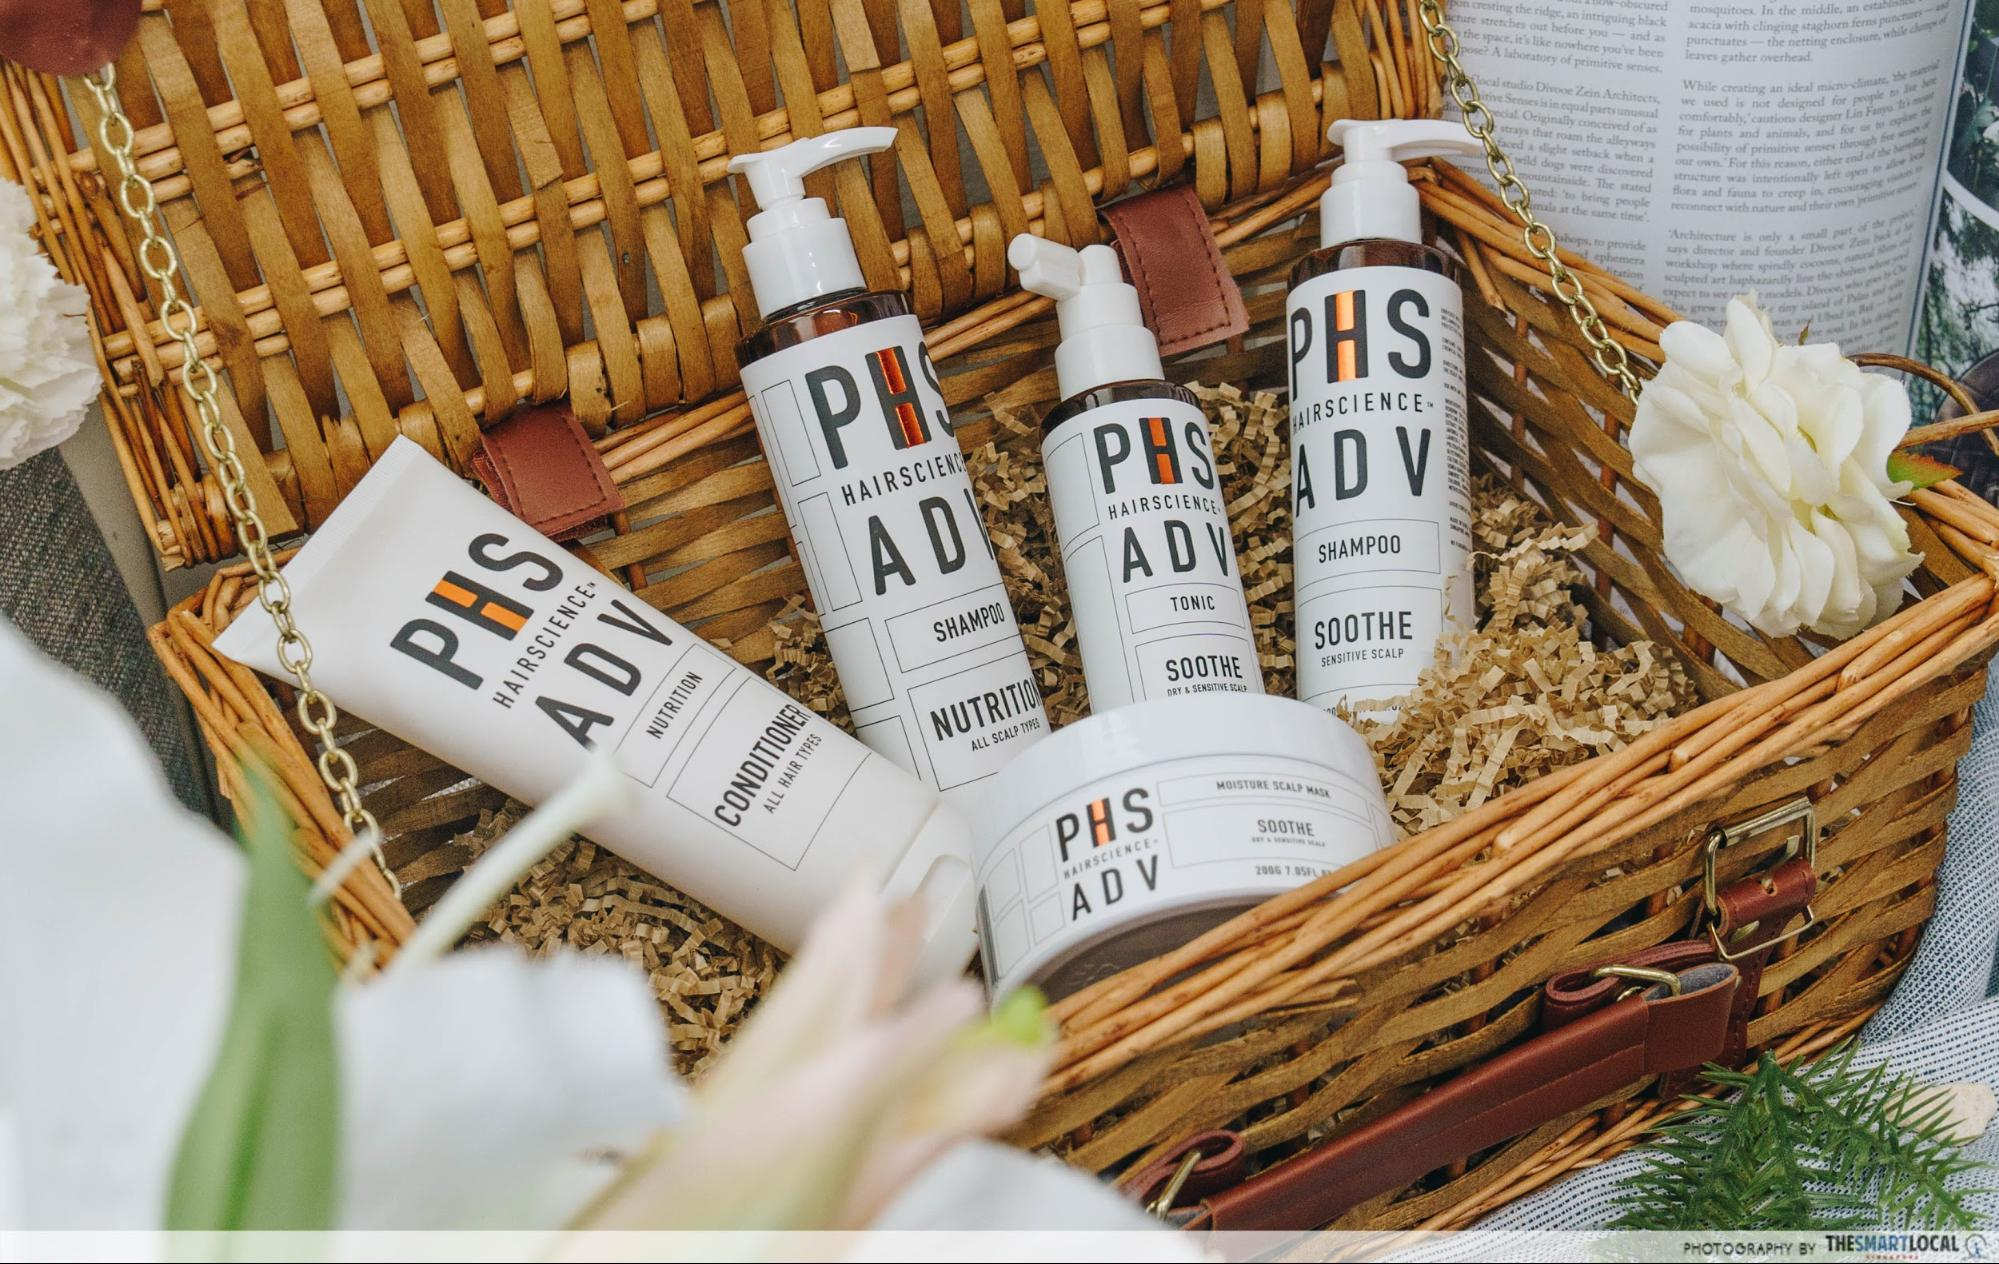 phs hairscience hair washing mistakes soothe